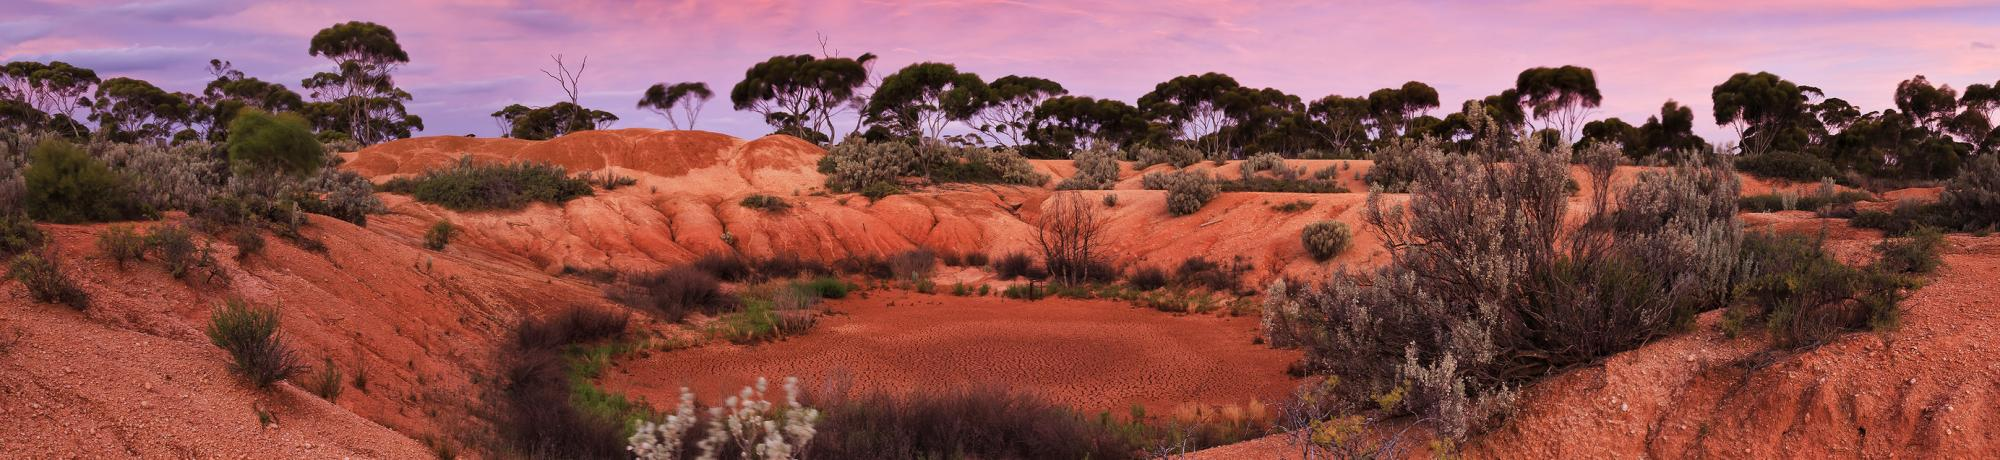 UC Davis Study Abroad, Summer Abroad Australia, Urban to Outback Program, Header Image, Courses Page